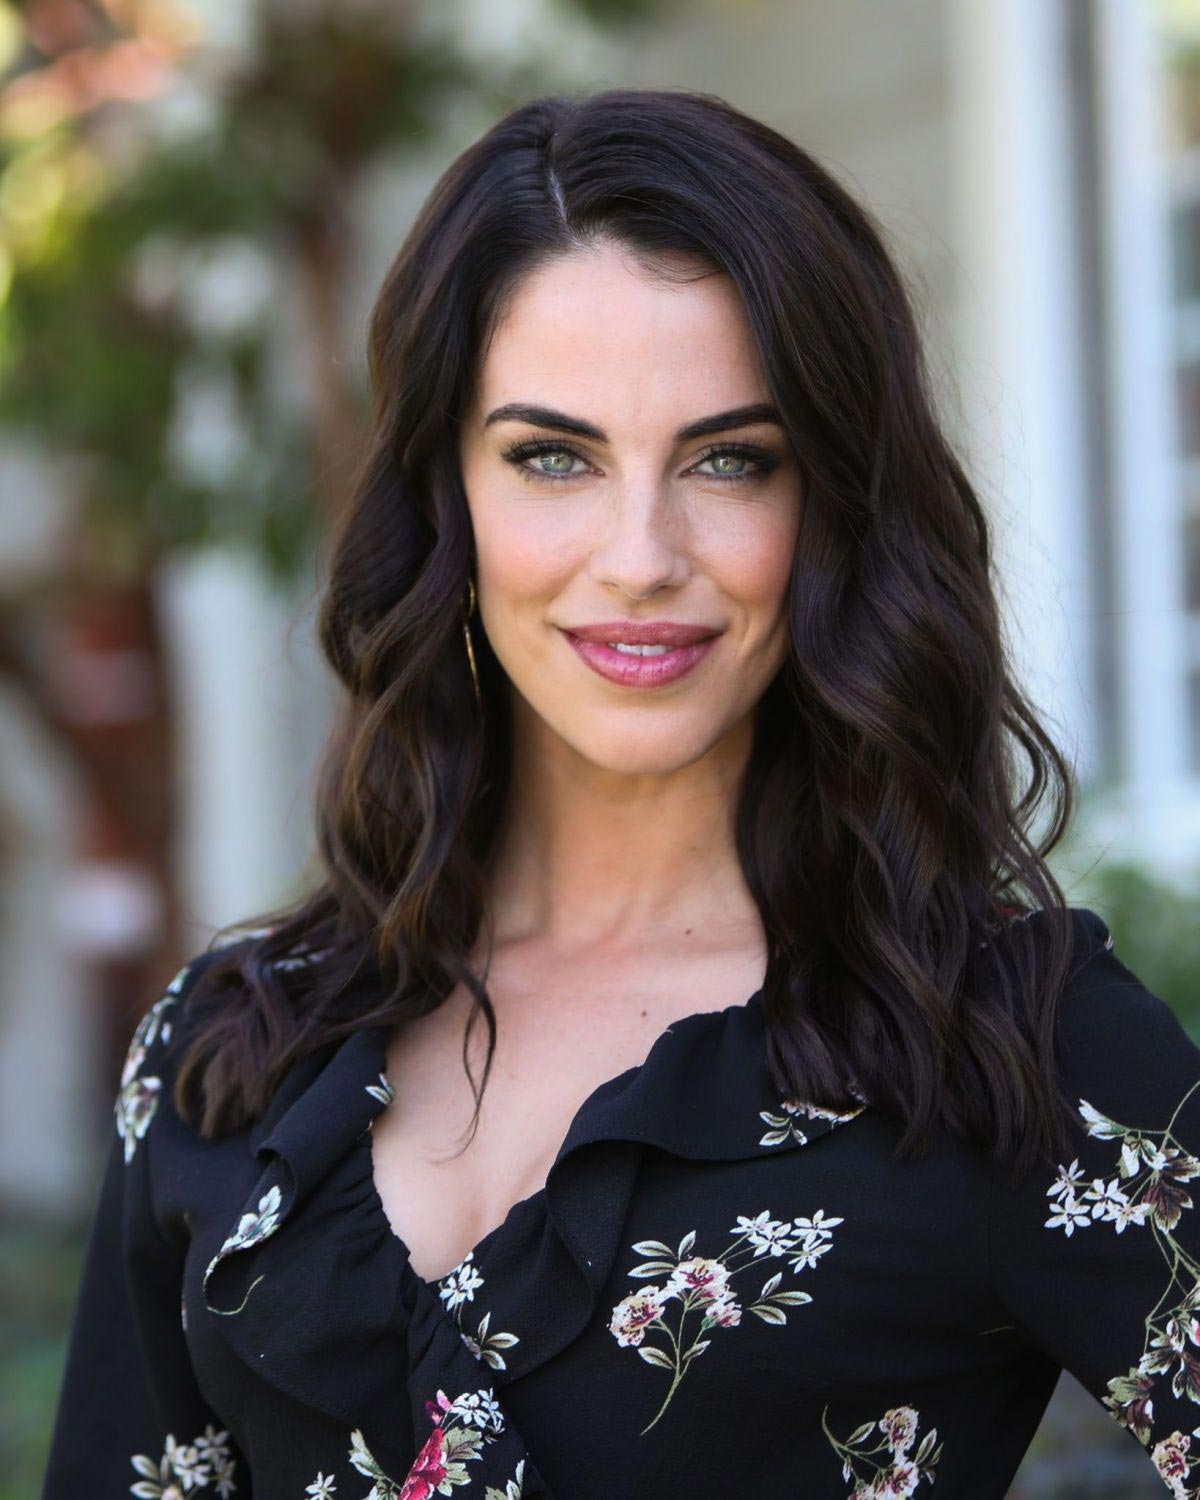 Discussion on this topic: Sadie Alexandru, jessica-lowndes/